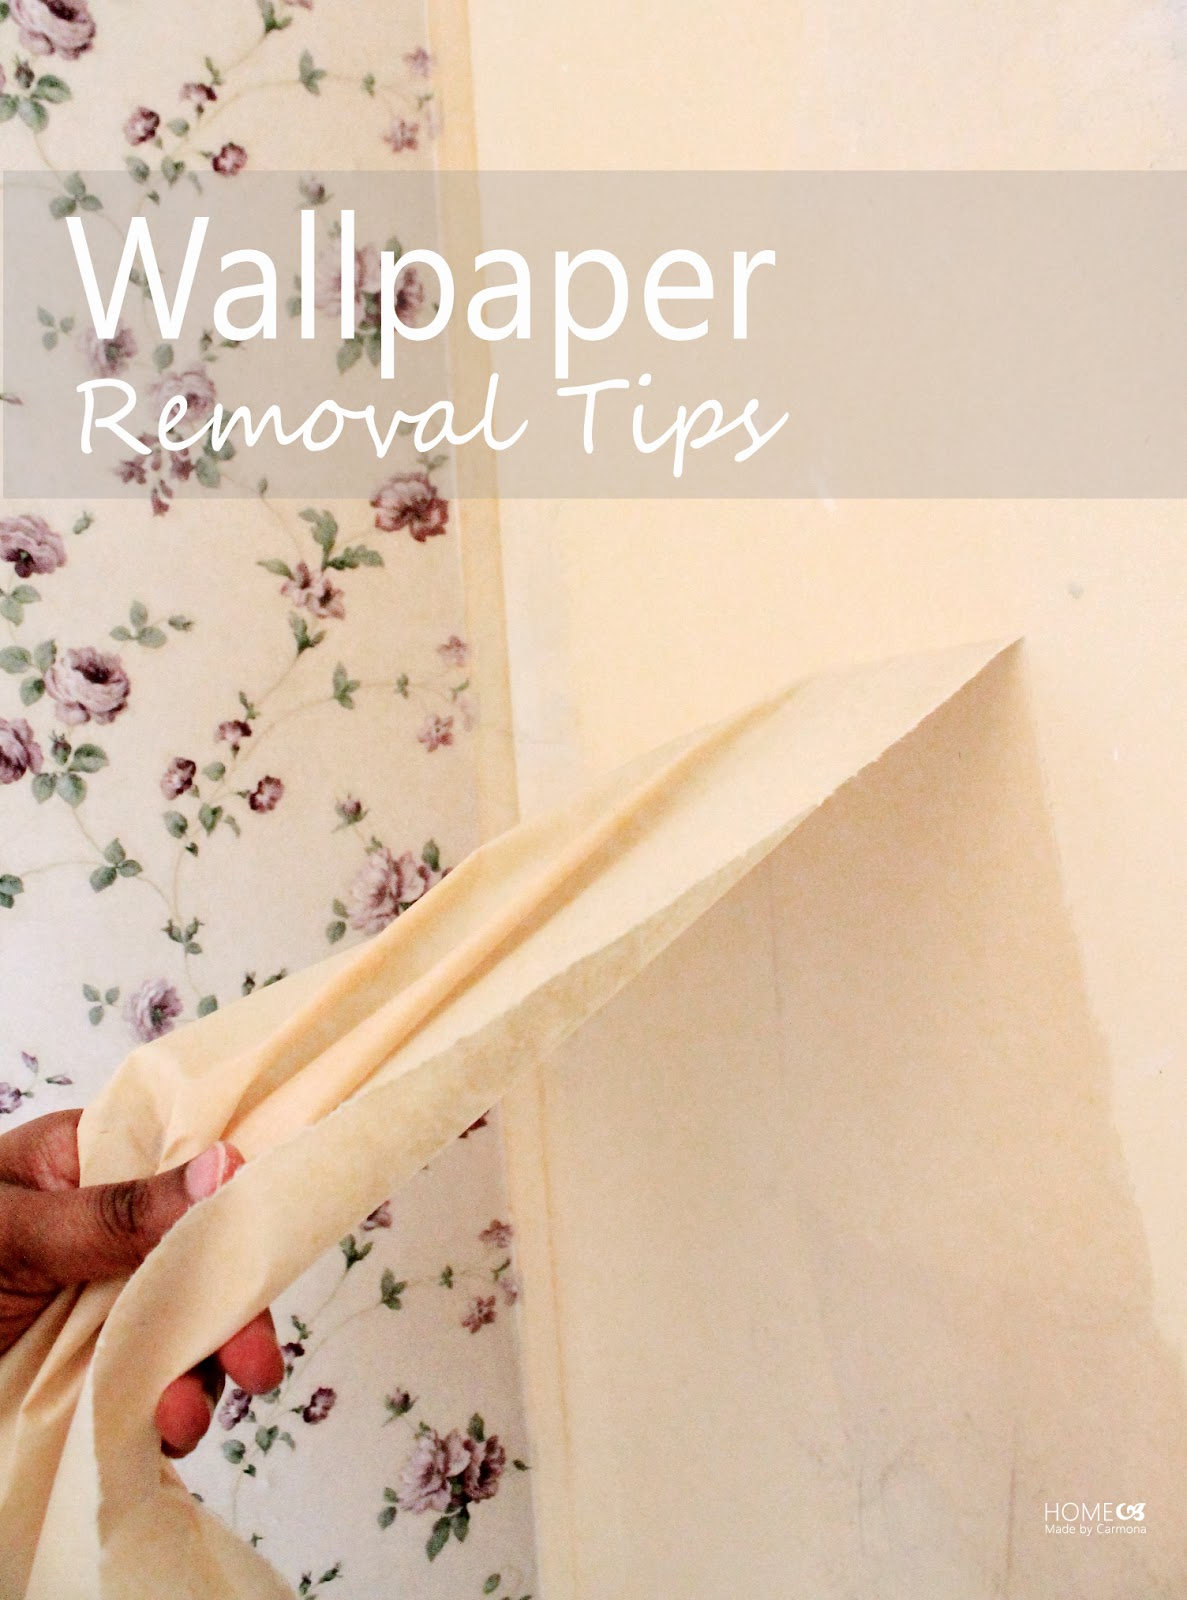 Wallpaper Wallpaper On The Wall Home Made by Carmona 1187x1600